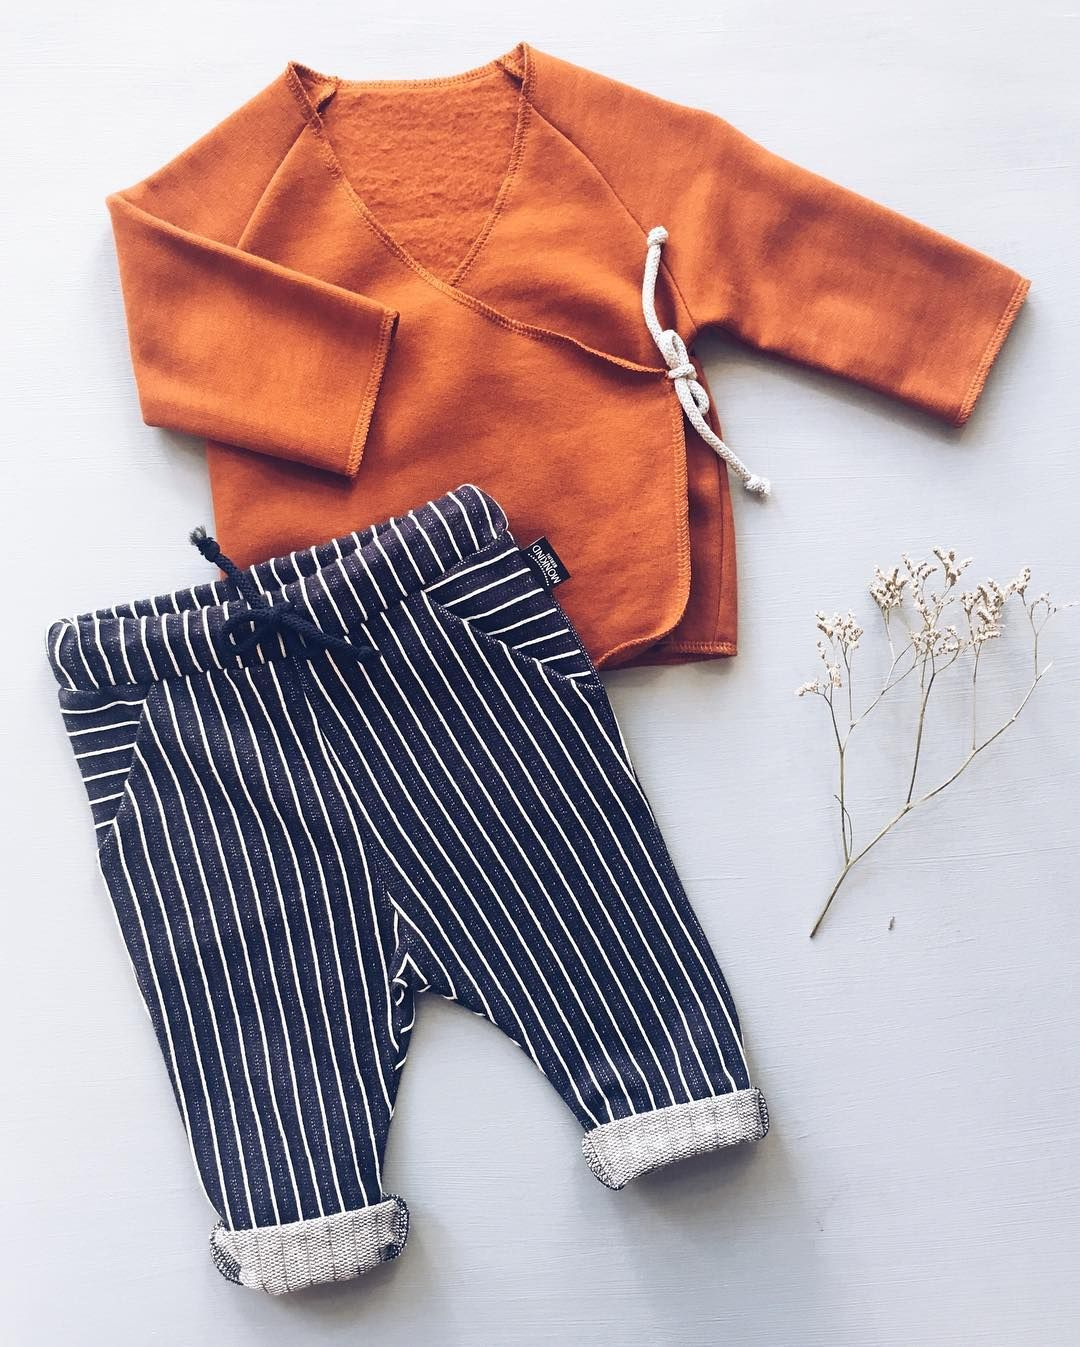 For Little Explorers Happy Sunday Monkind Depiction Collectionaboutcreativity Ootd Childrens Fashion